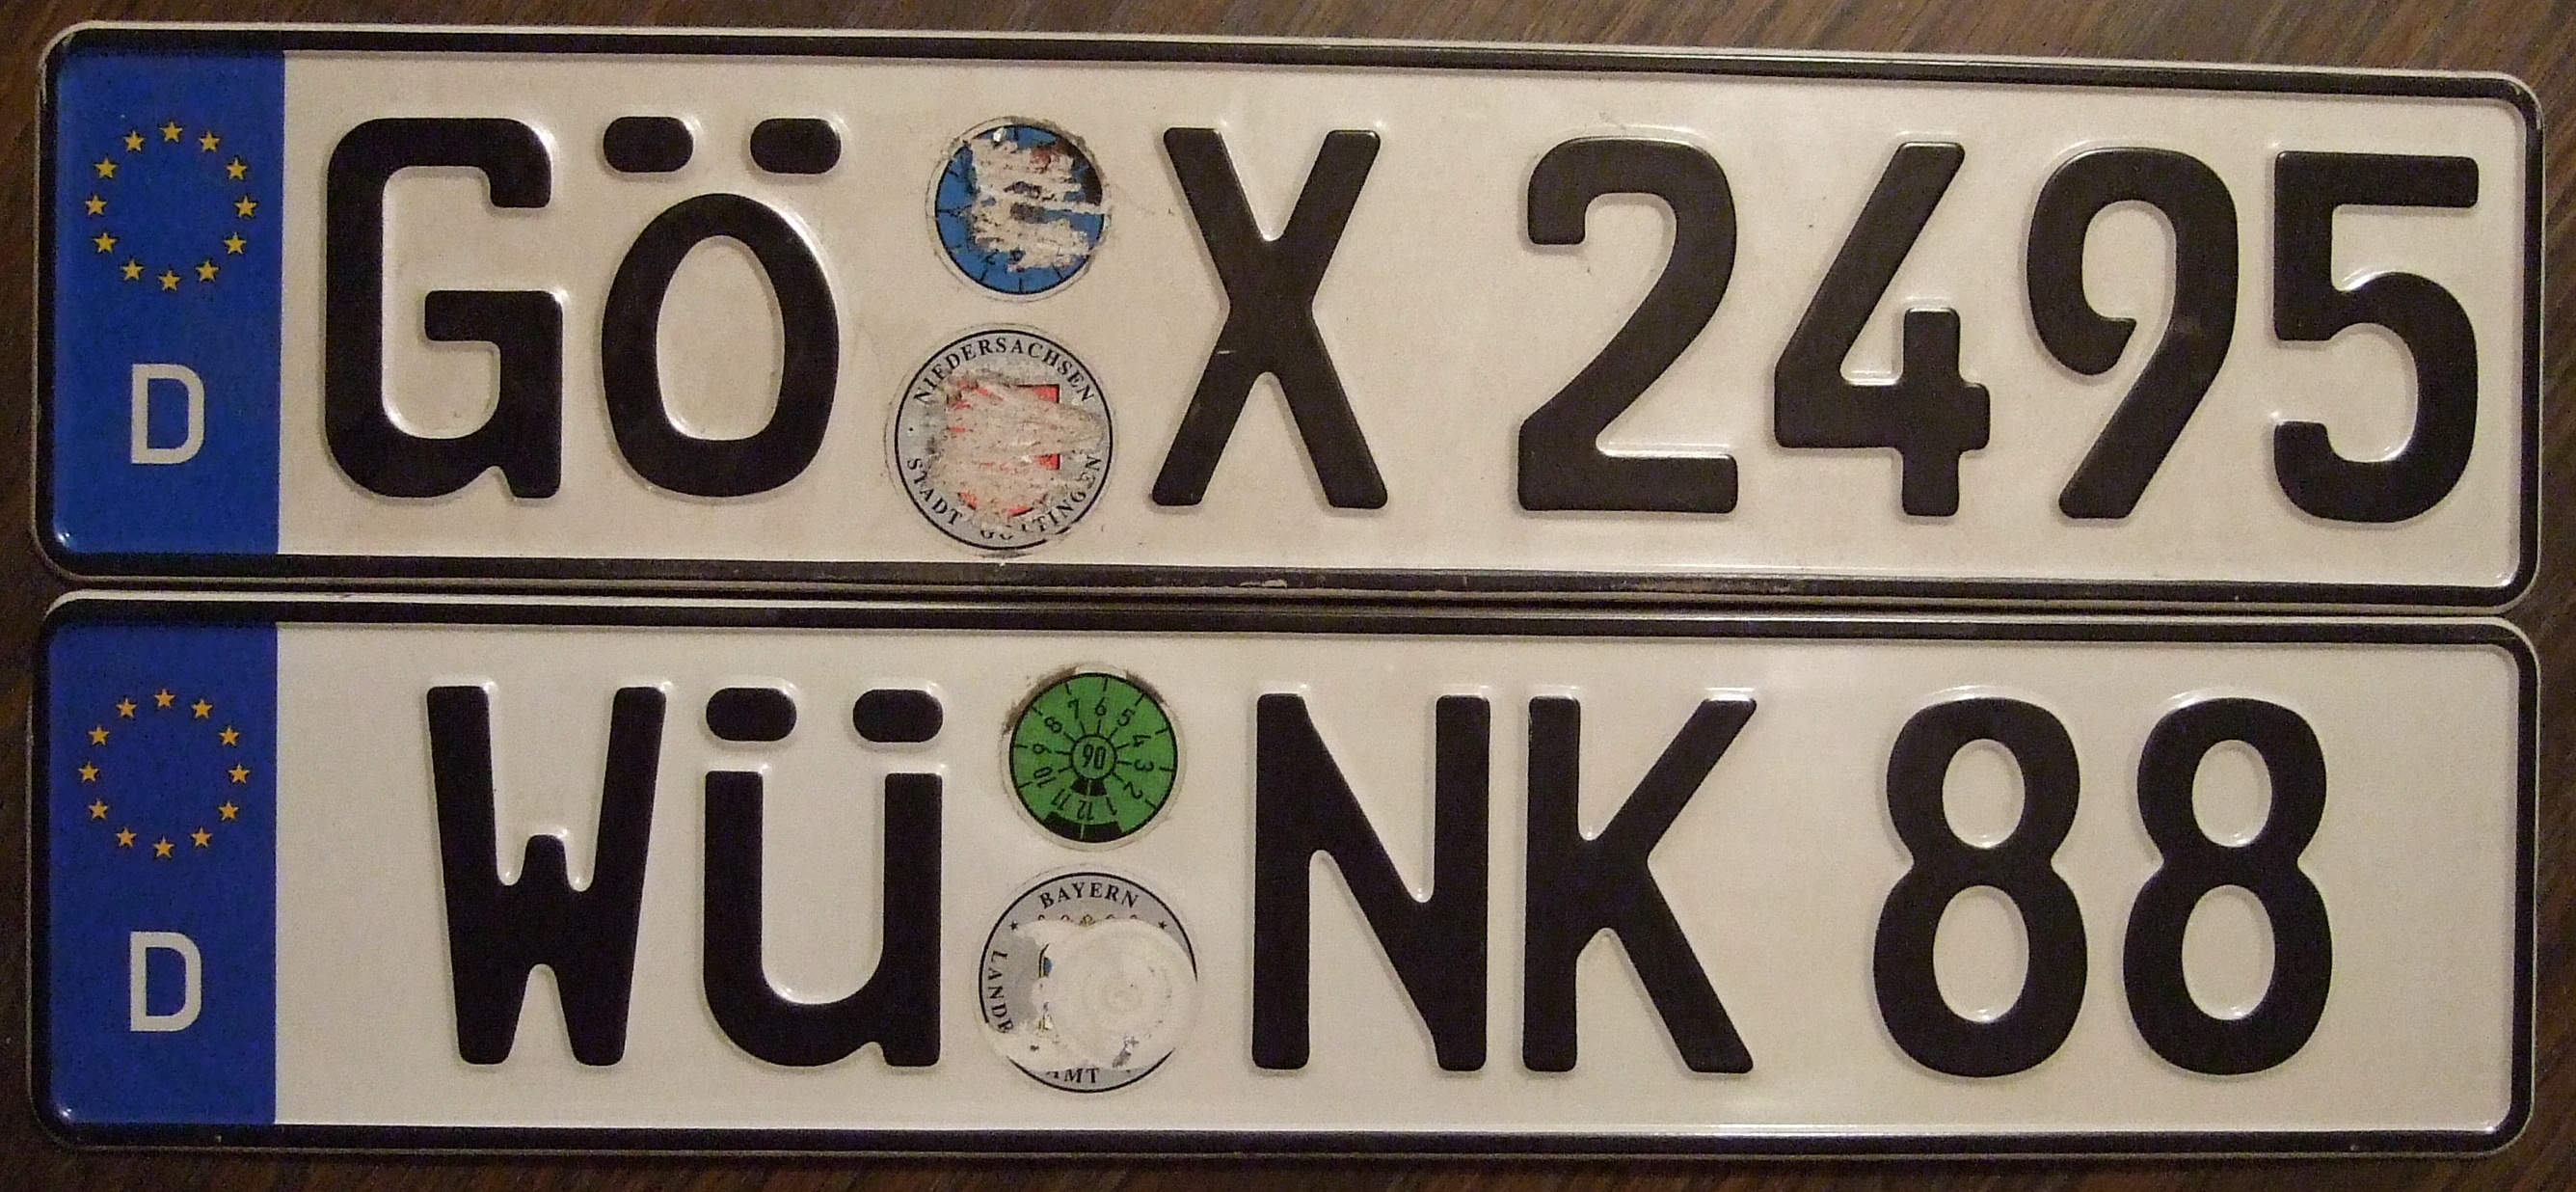 File:GERMANY License plates with German letters - Flickr